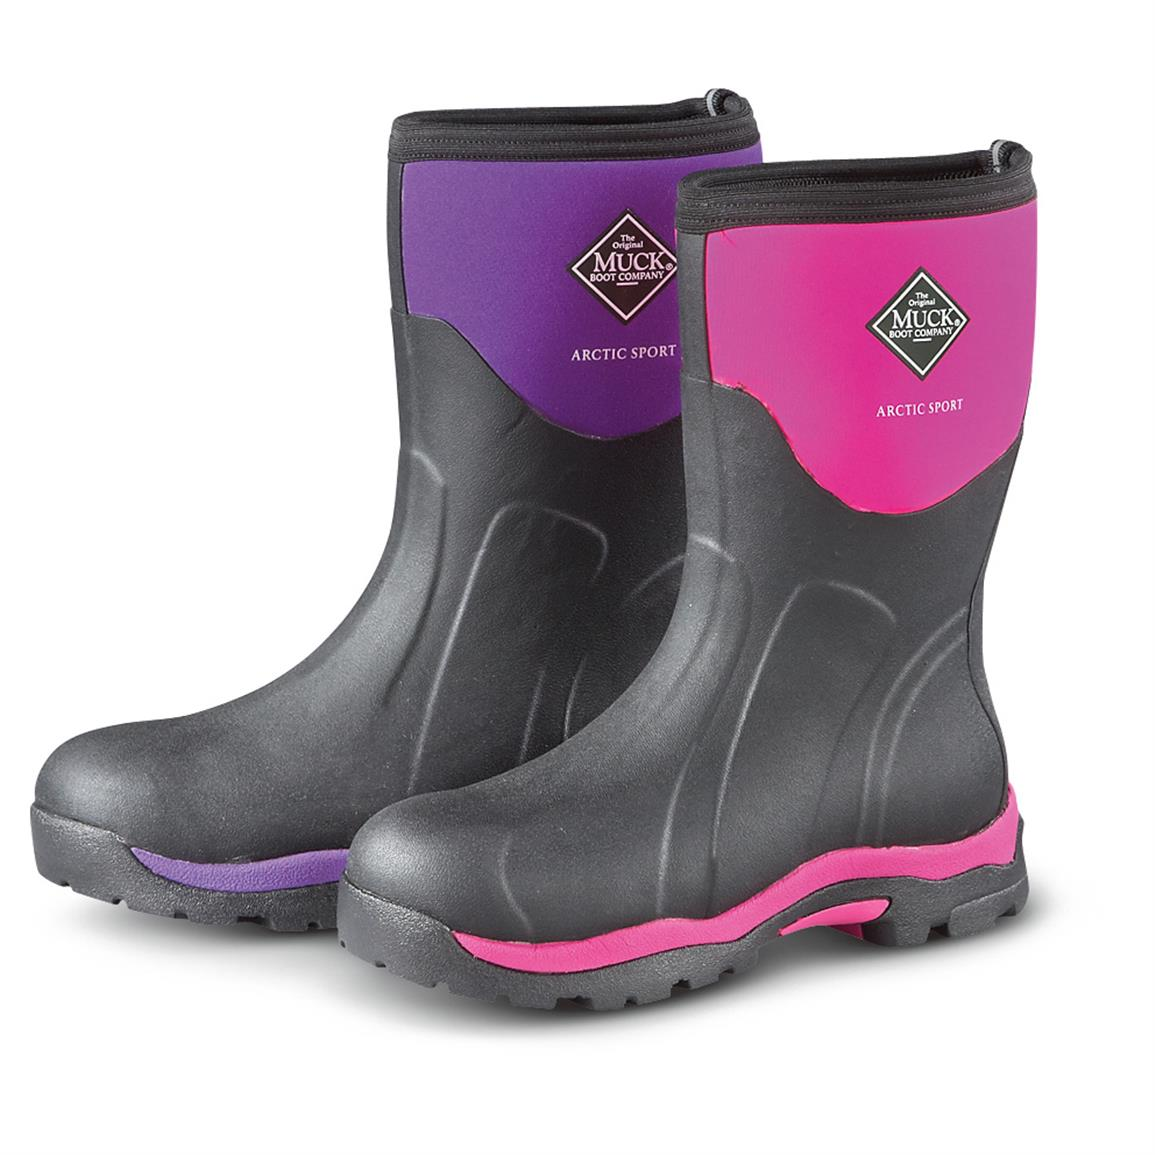 Muck Boots Womens y7A1FTJf